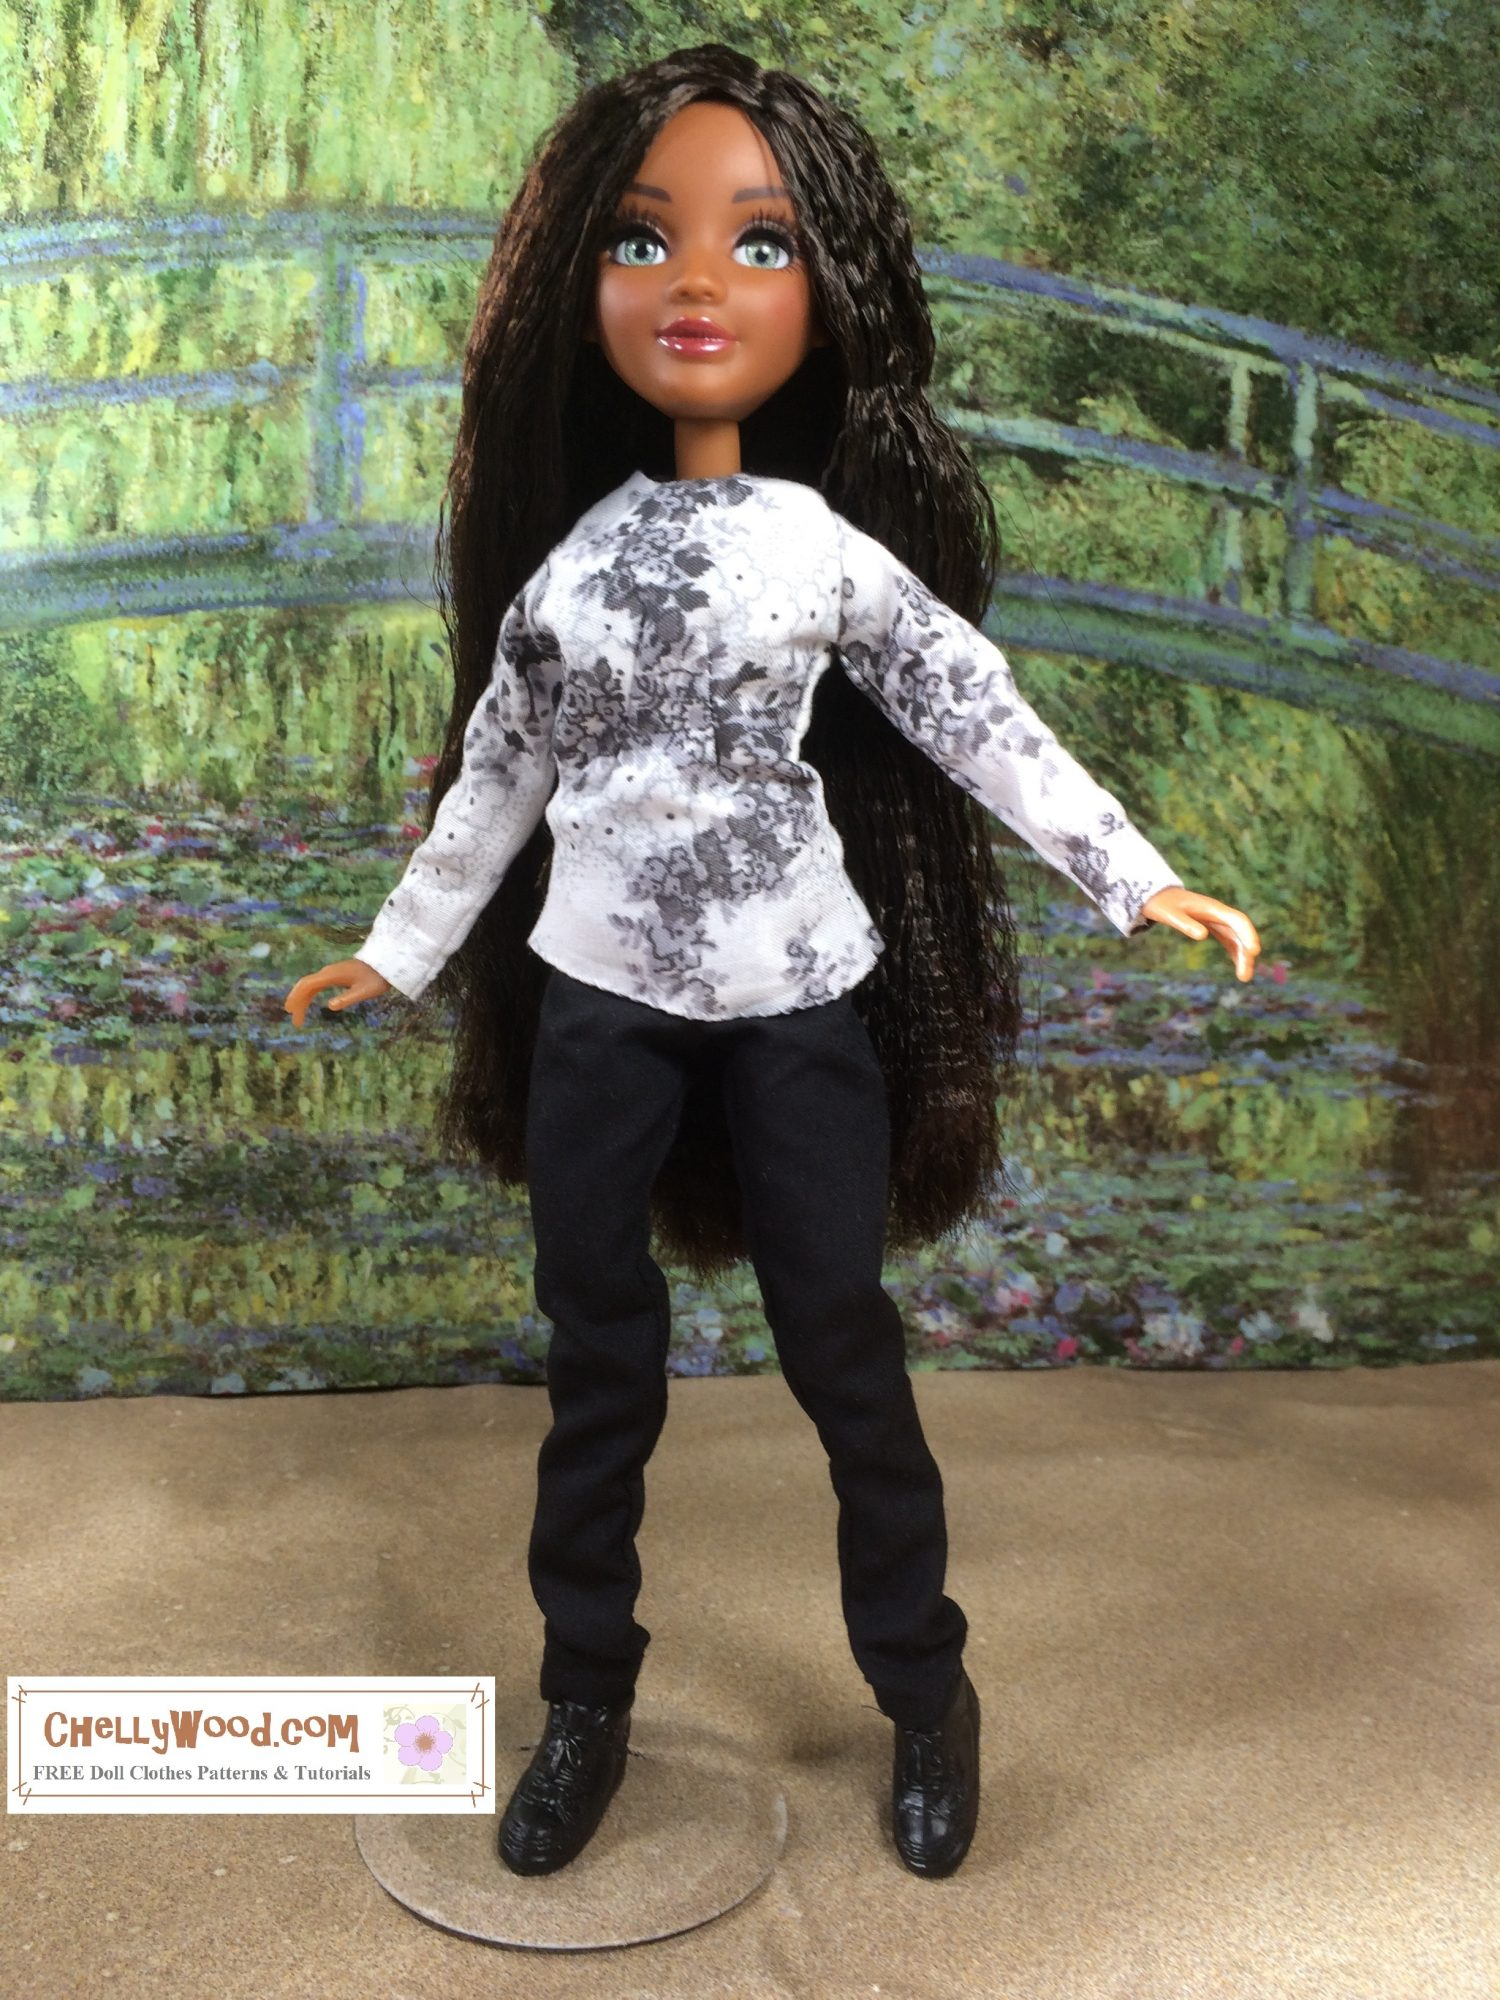 Here we see a Bryden Bandweth doll from the Project MC Squared TV show, modeling a long-sleeved shirt and elastic-waist pants. The shirt is white with a floral print. The pants are black and a bit long on her. She stands in front of a painting of Monet's green bridge with sand at her feet.